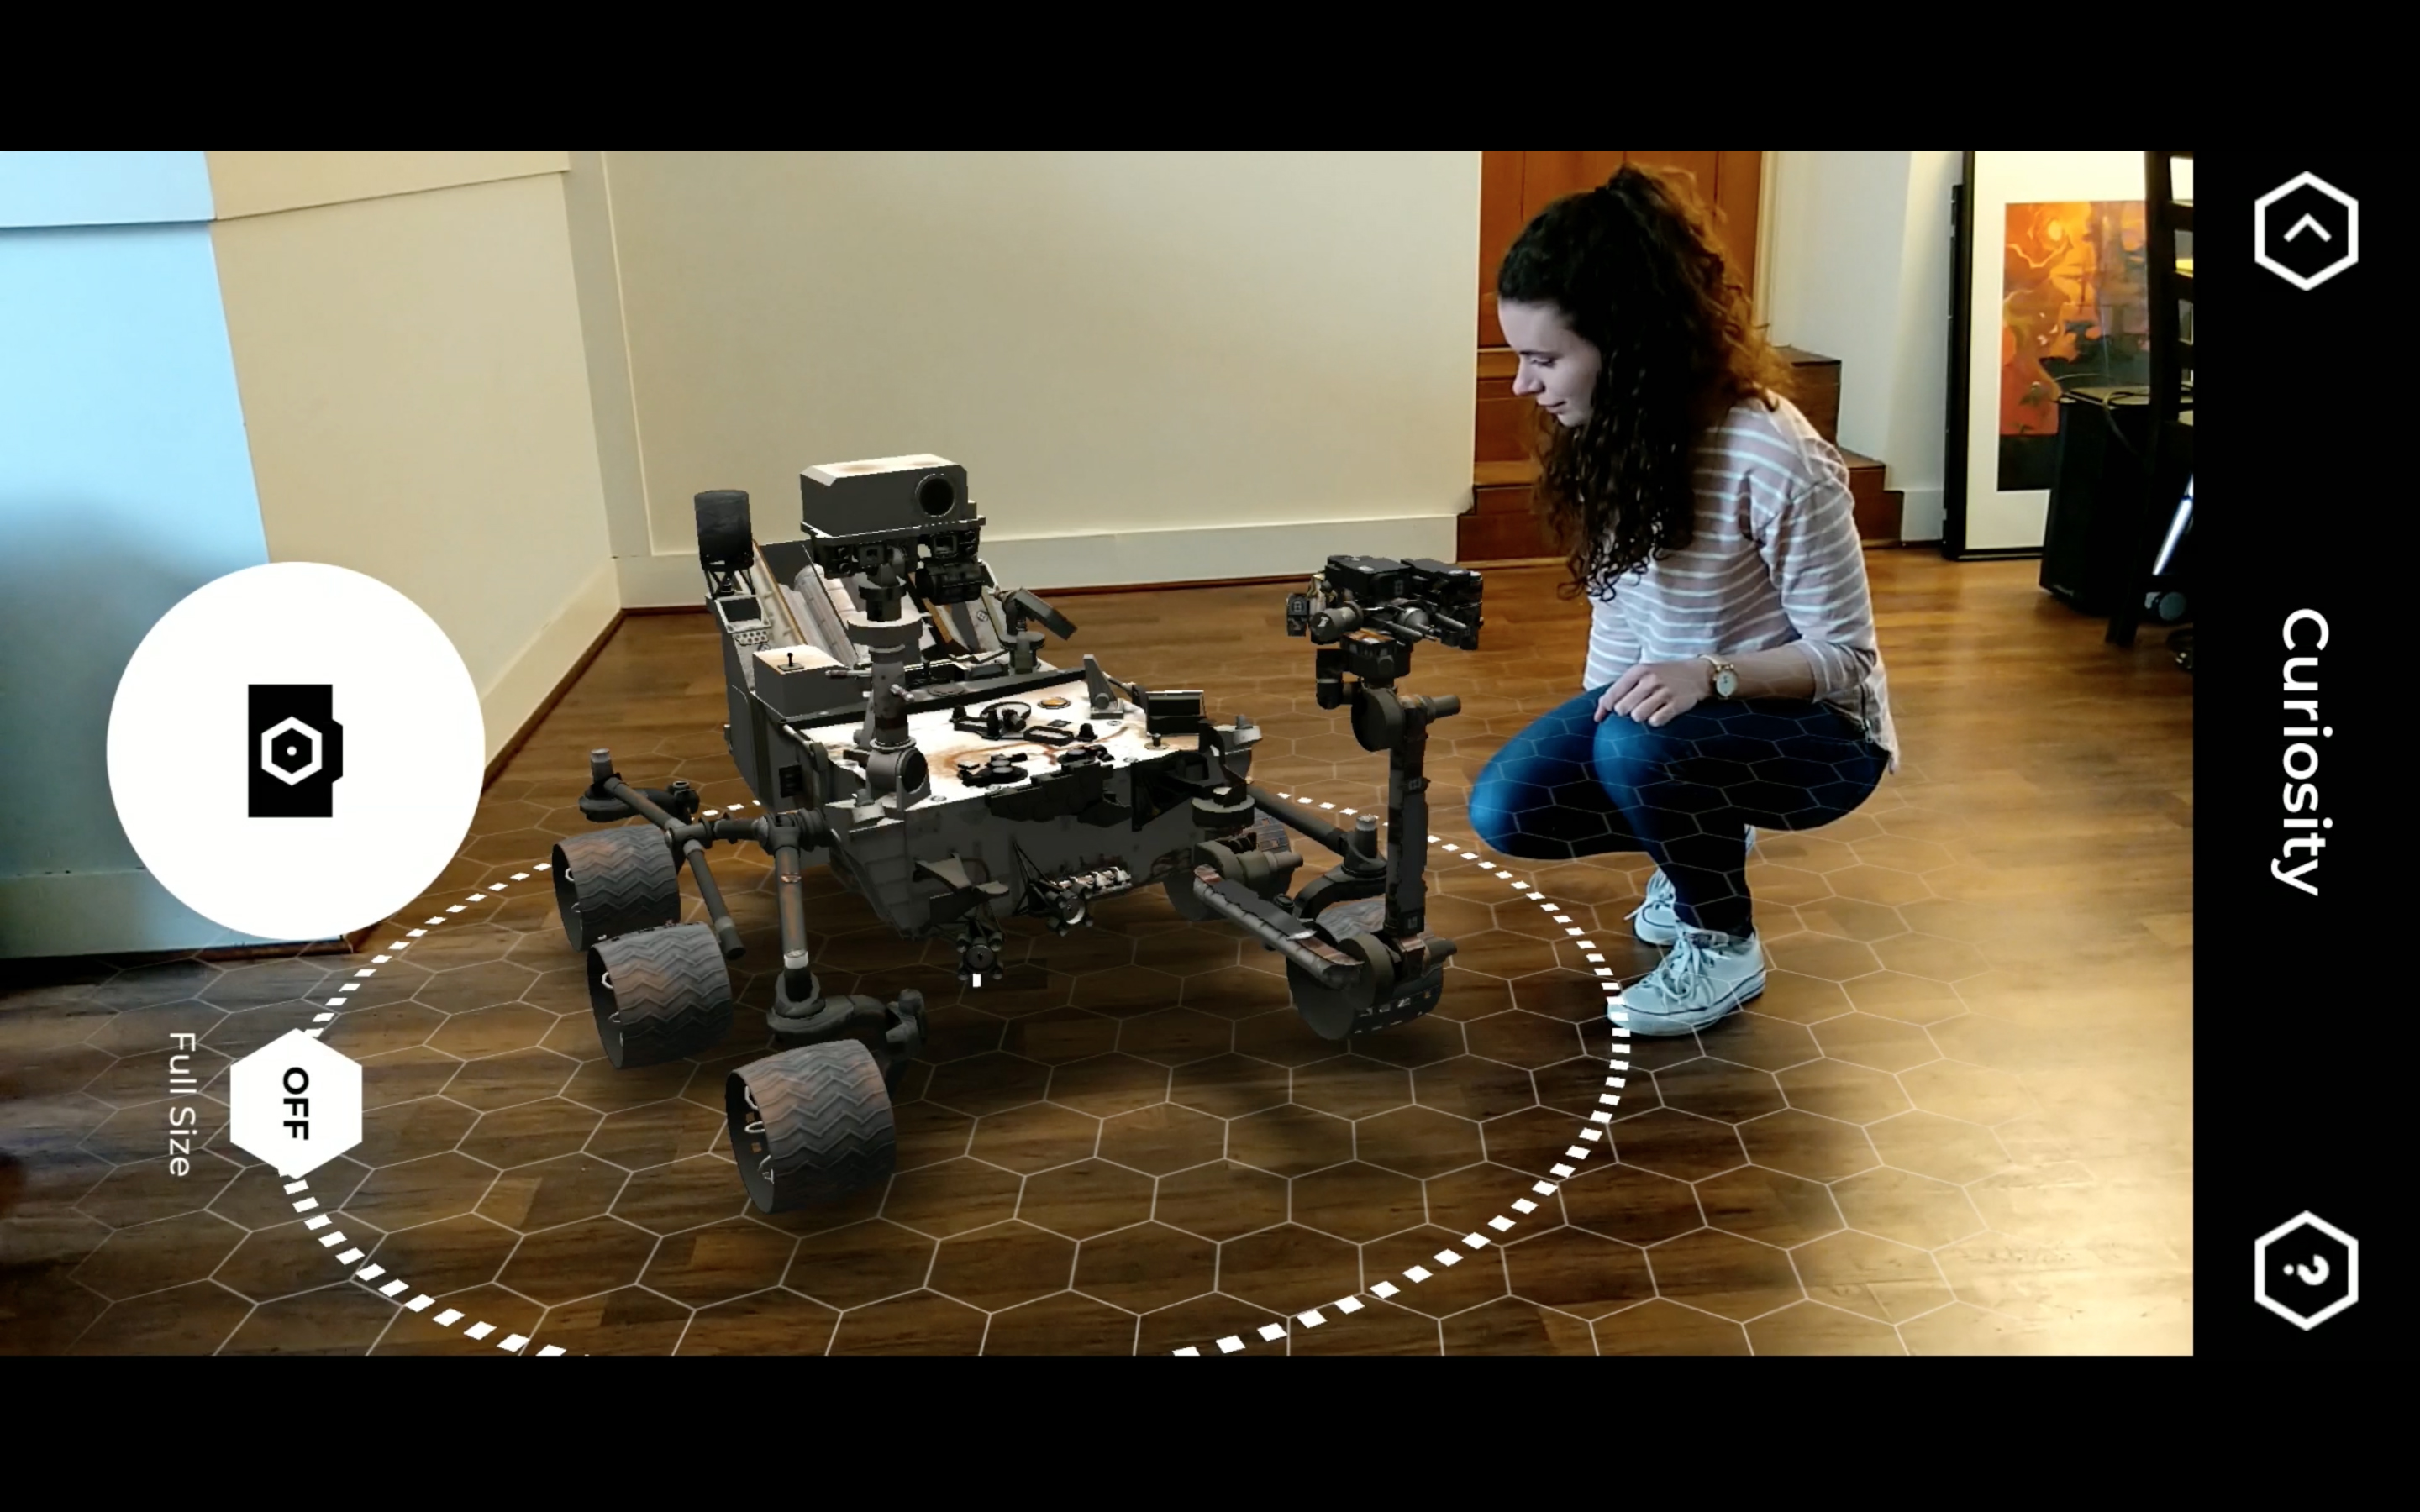 woman kneeling by augmented-reality rover